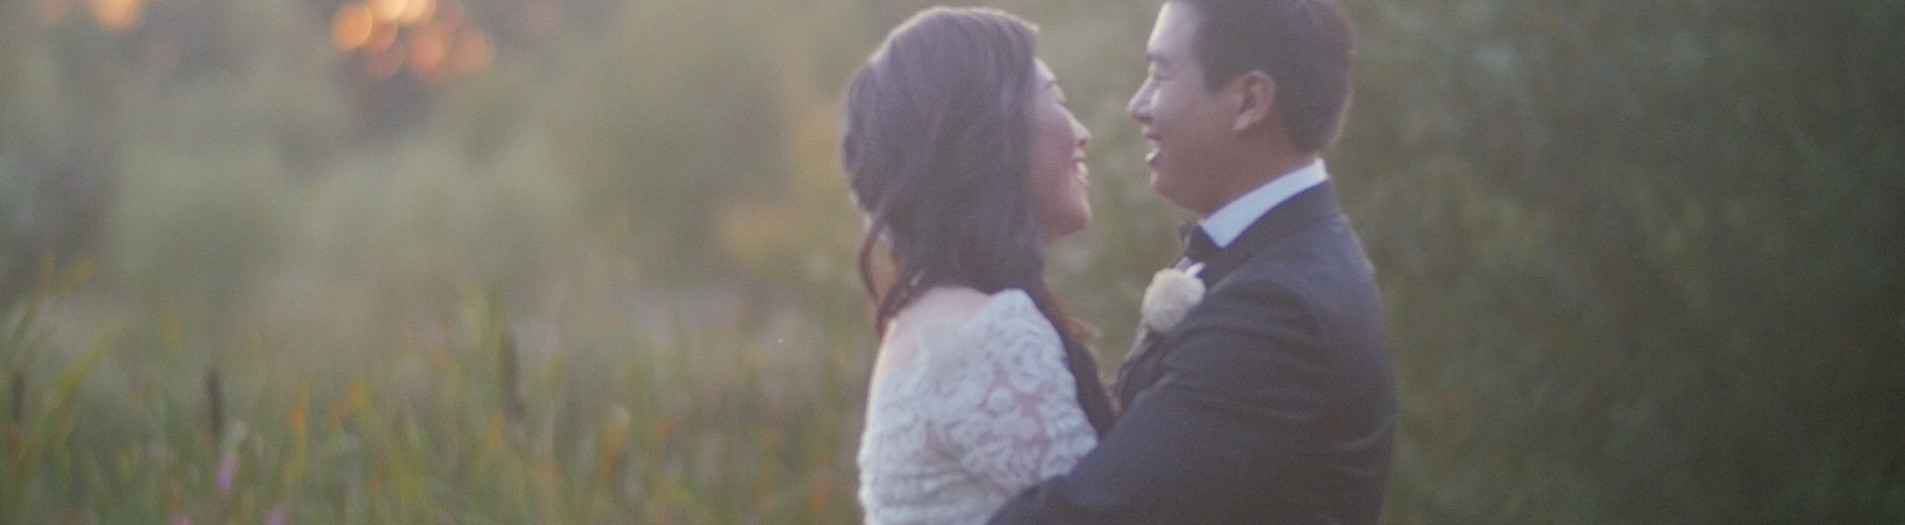 Sean & Esther // Wedding Highlight Film // The Vancouver Club, Vancouver BC